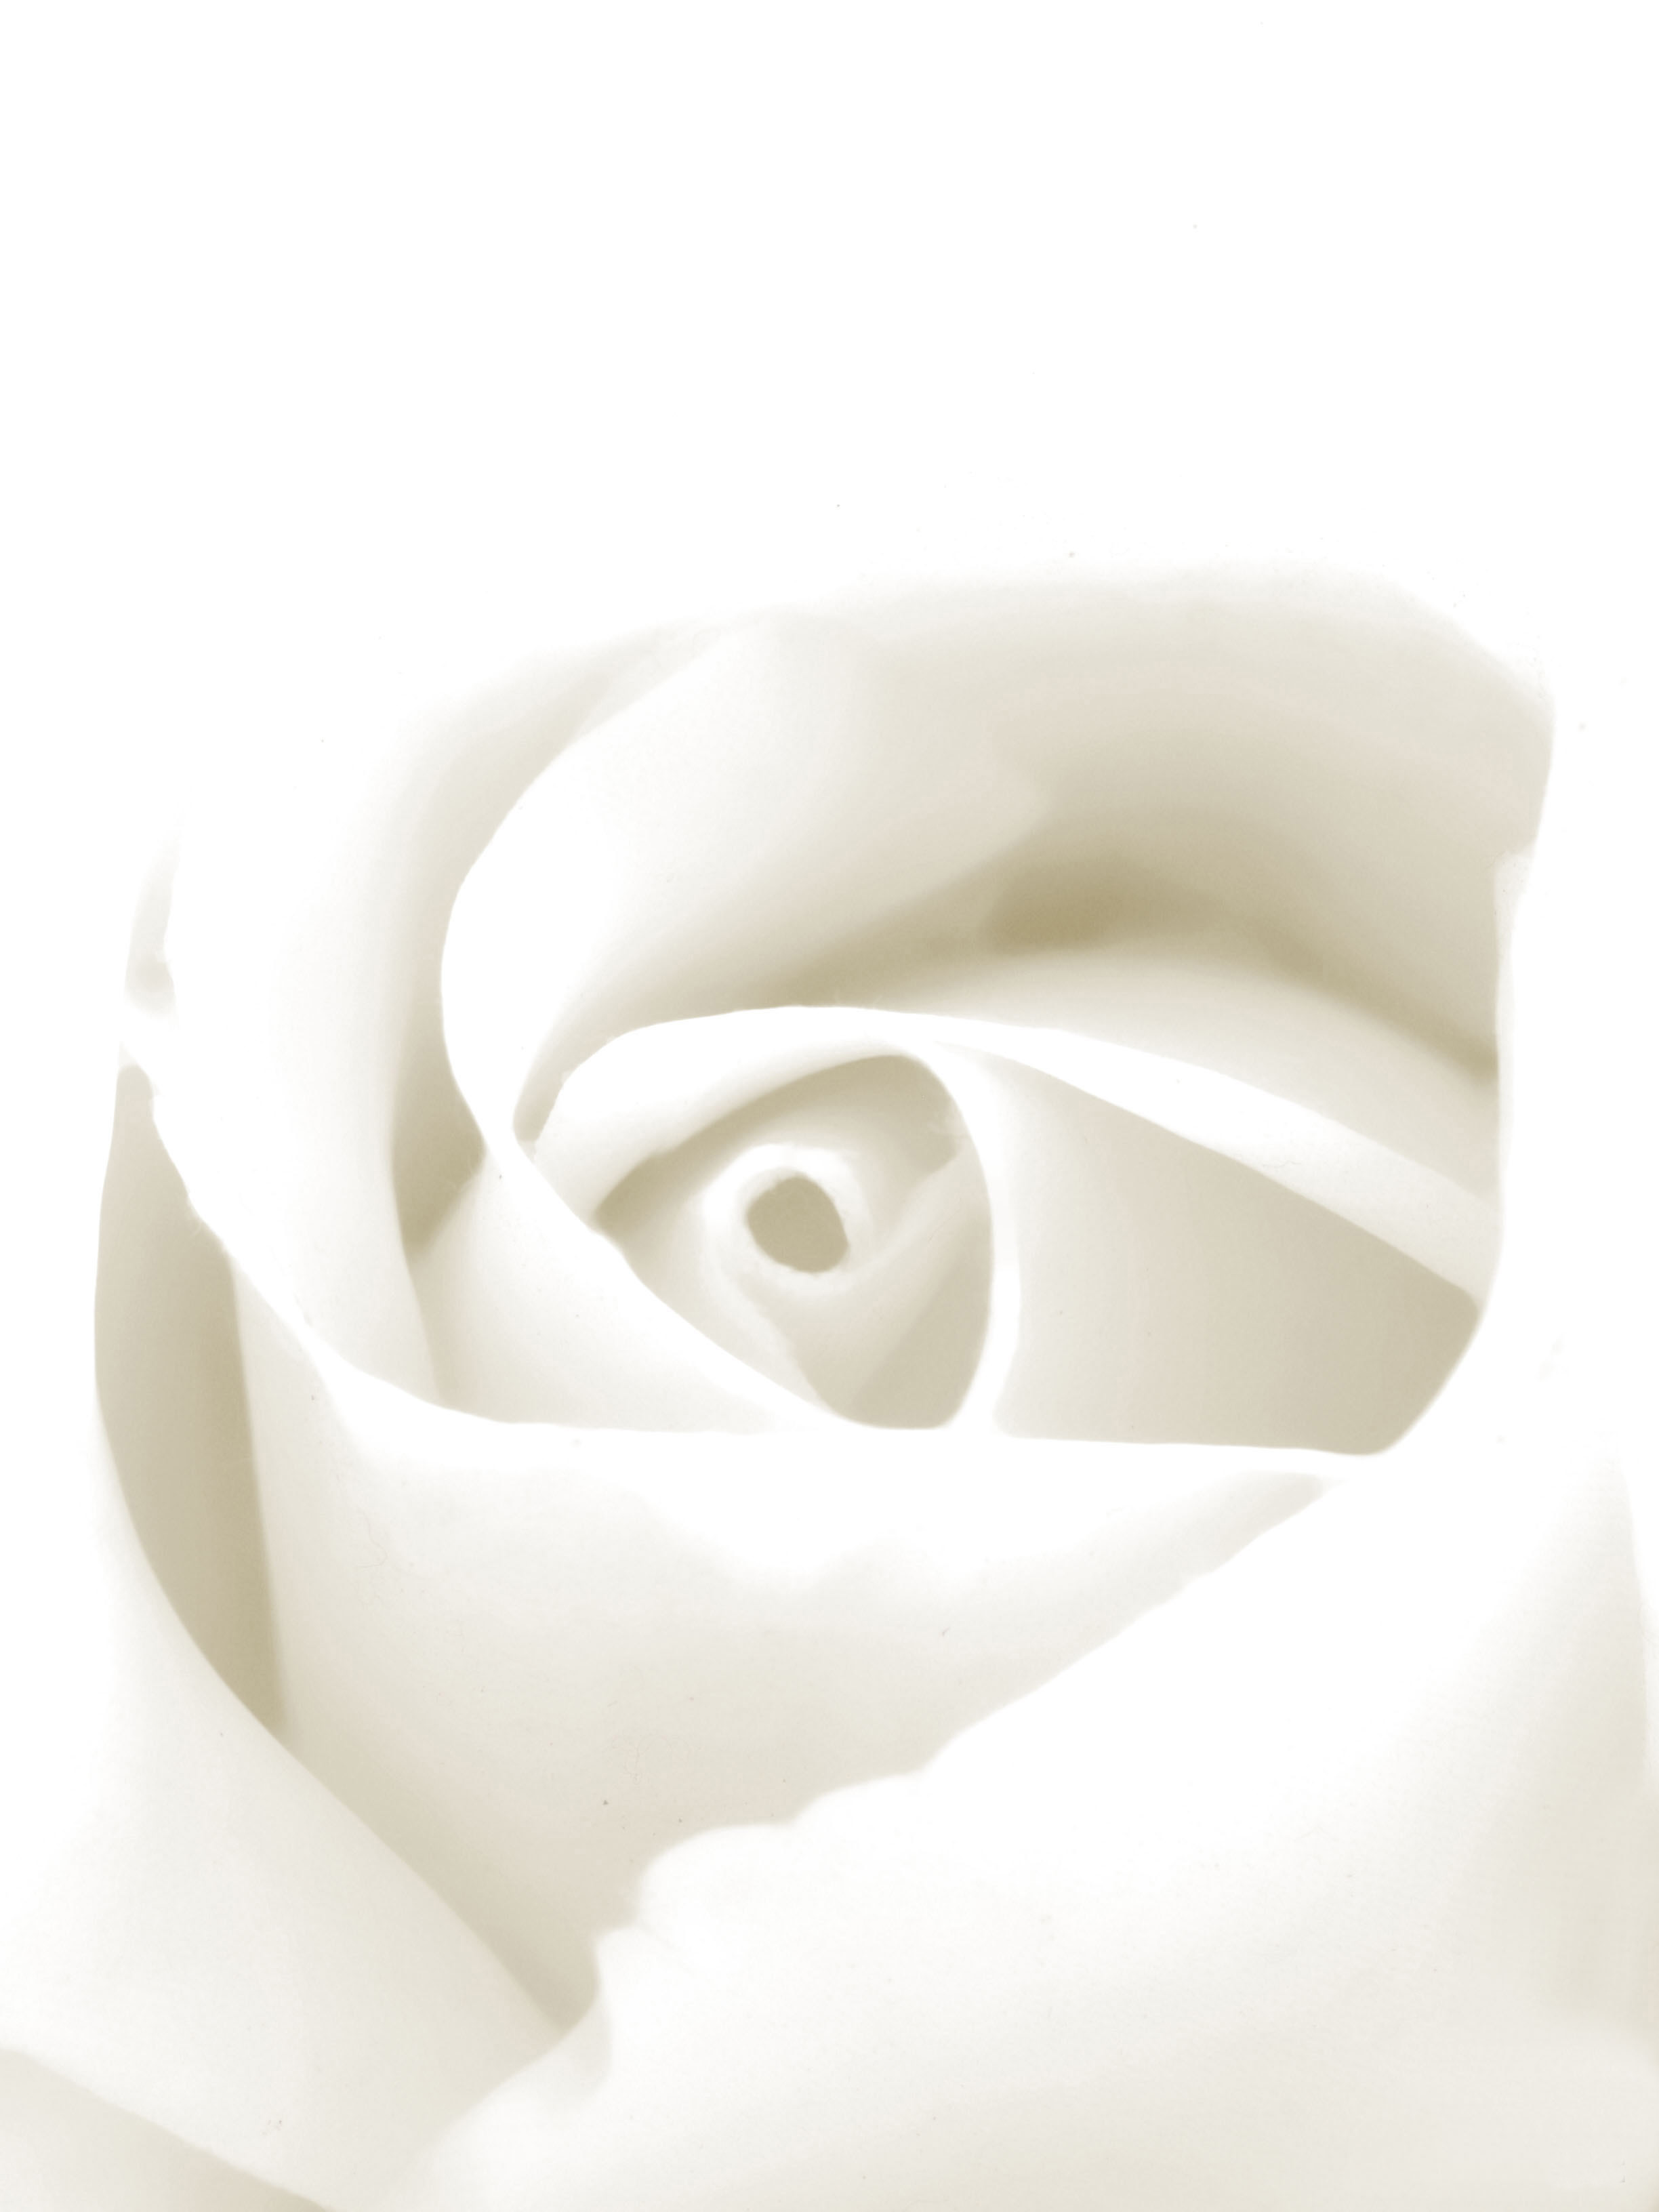 The White Rose by Manolo Toledo - Downloaded from 500px.jpg